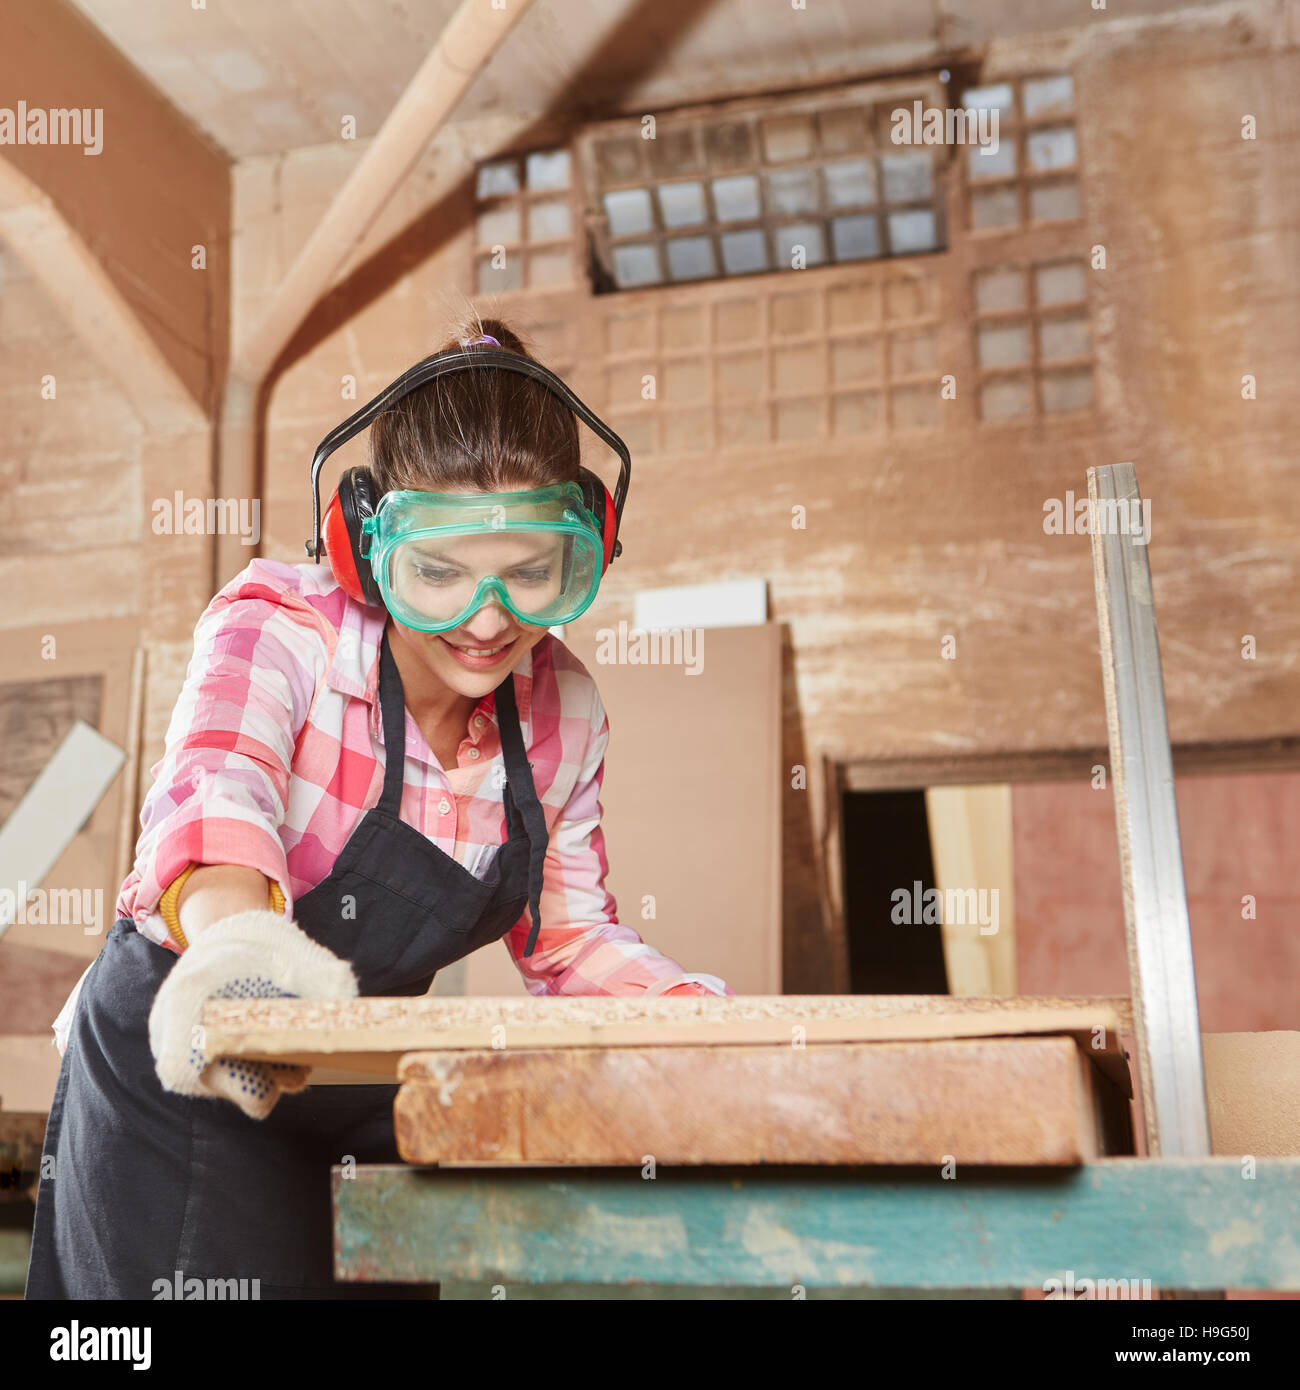 Woman cutting wood with grinder during her apprenticeship - Stock Image